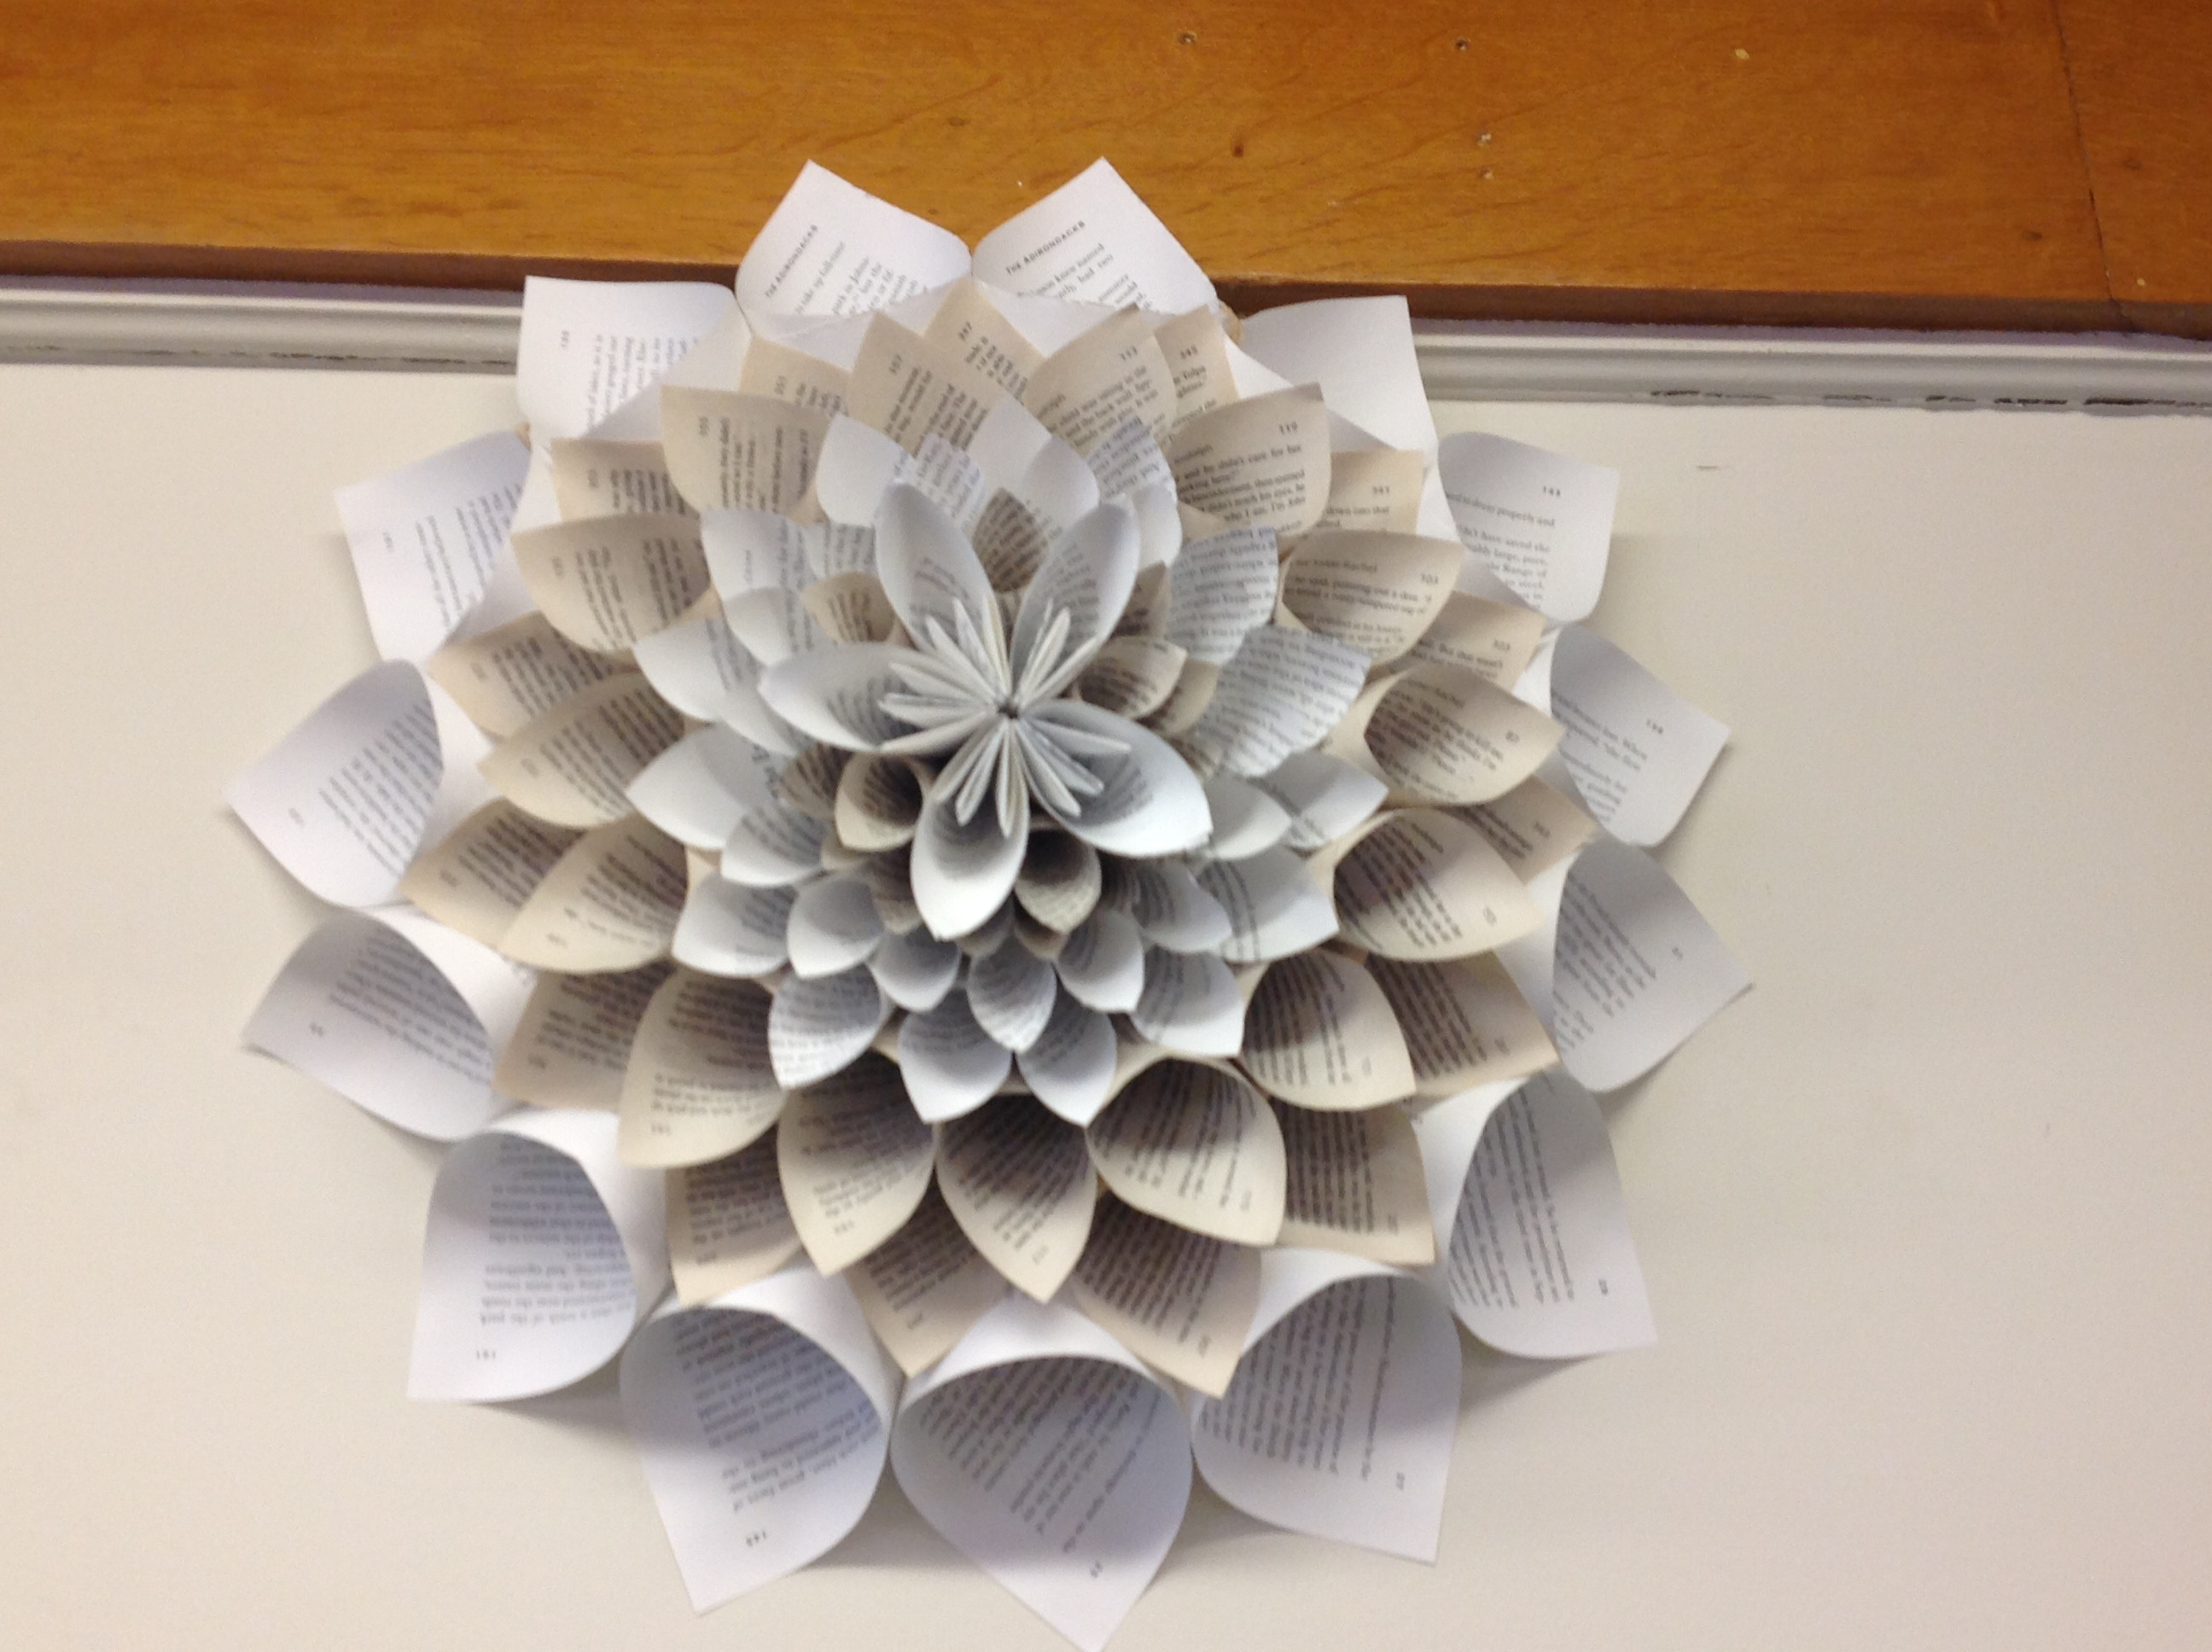 Recycled Craft Ideas For Adults  Recycled Art Projects Adults Library Incubator DMA Homes